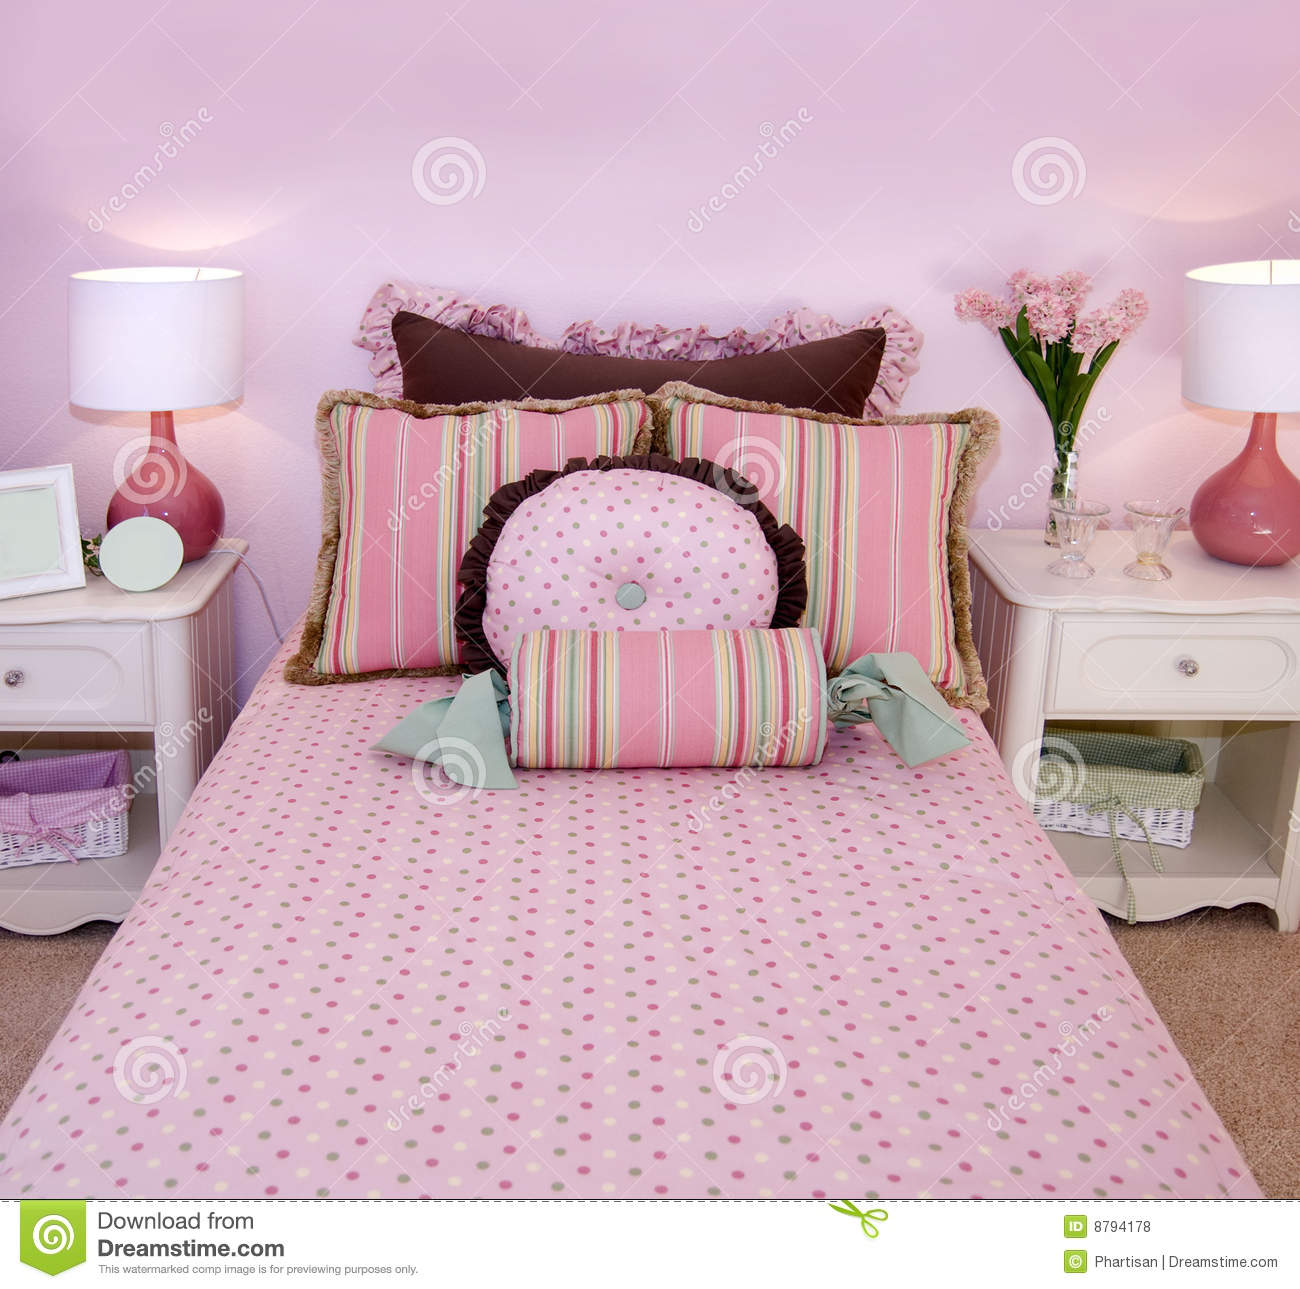 Pink bedrooms for little girls - Pink Little Girls Bedroom